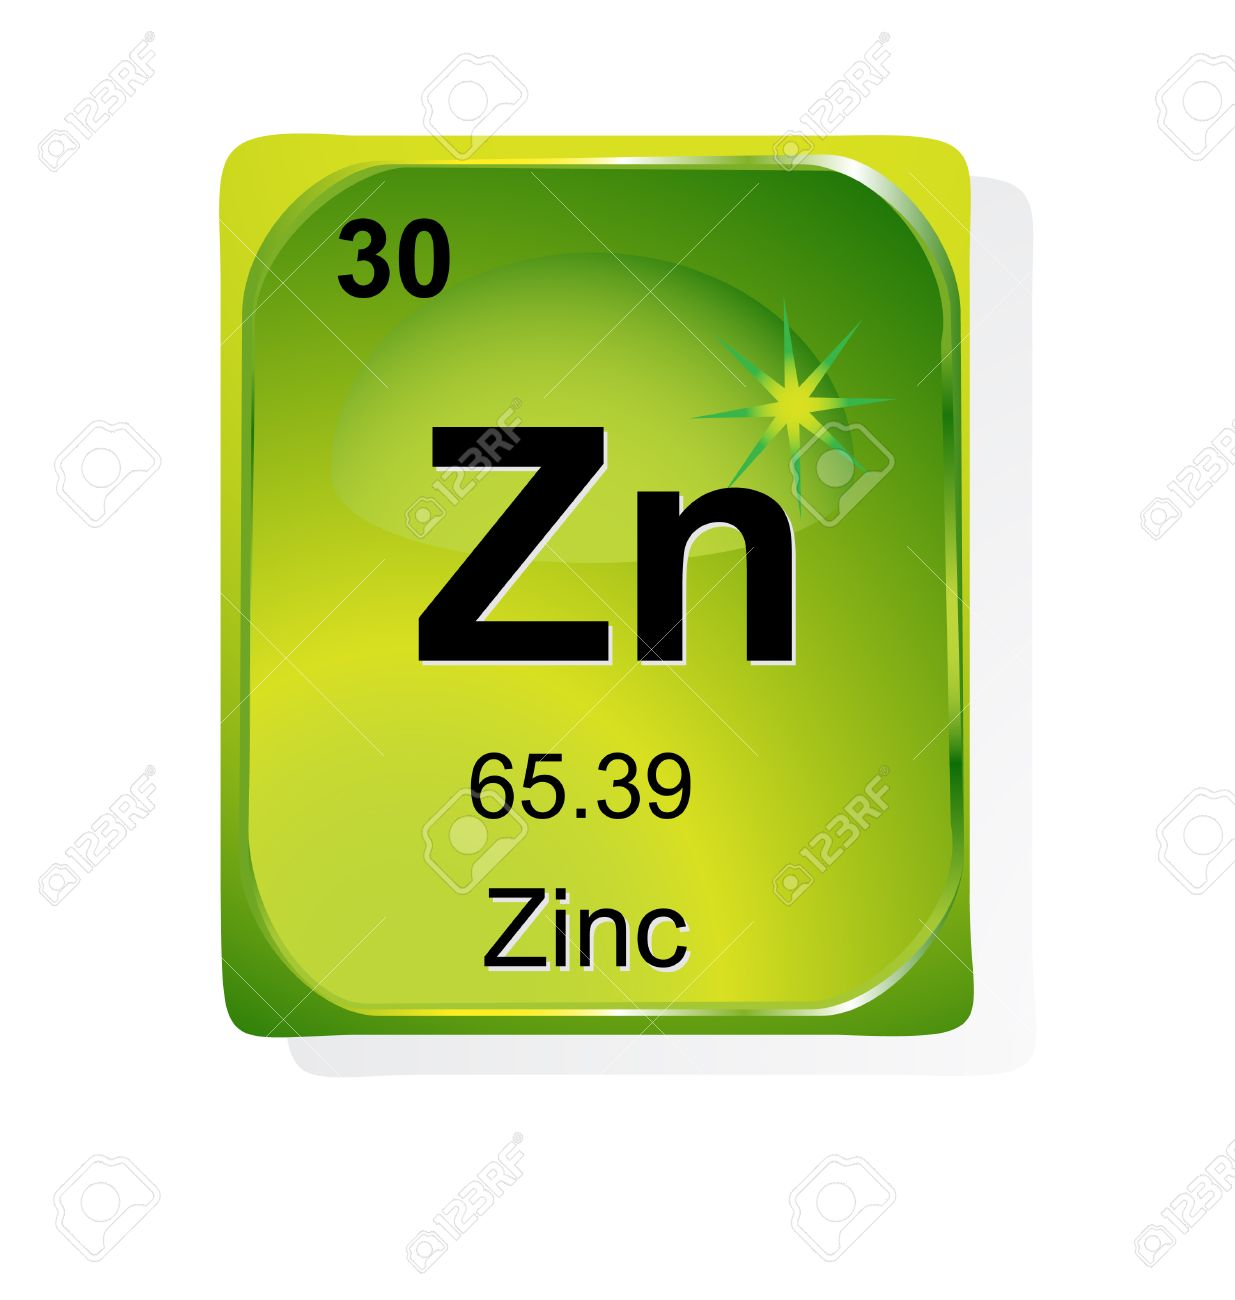 Zinc Chemical Element With Atomic Number Symbol And Weight Royalty